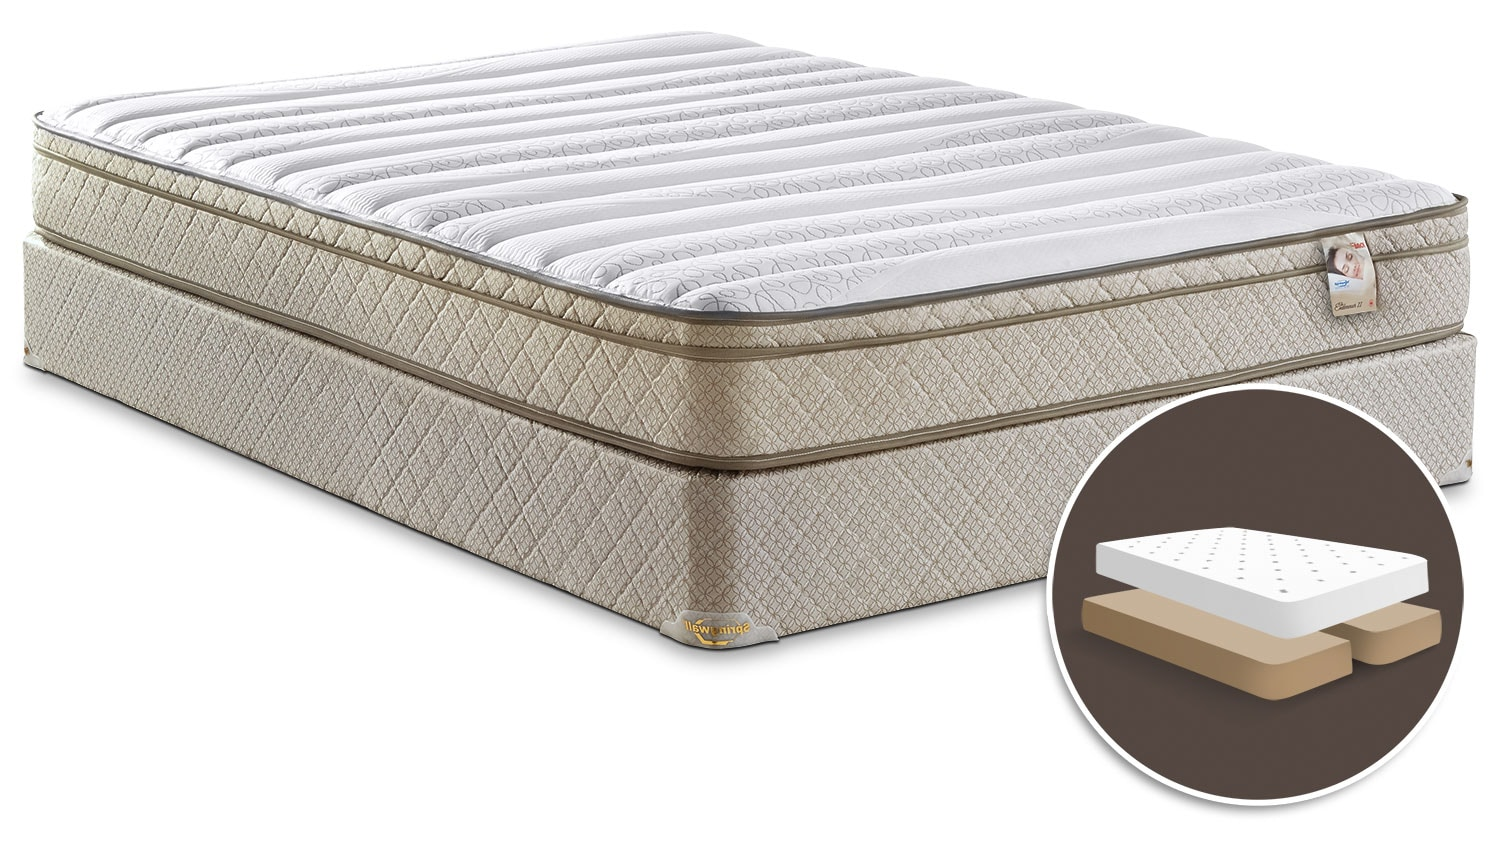 Mattresses and Bedding - Springwall Endeavour 2 Euro-Top Firm Queen Mattress and Split Boxspring Set